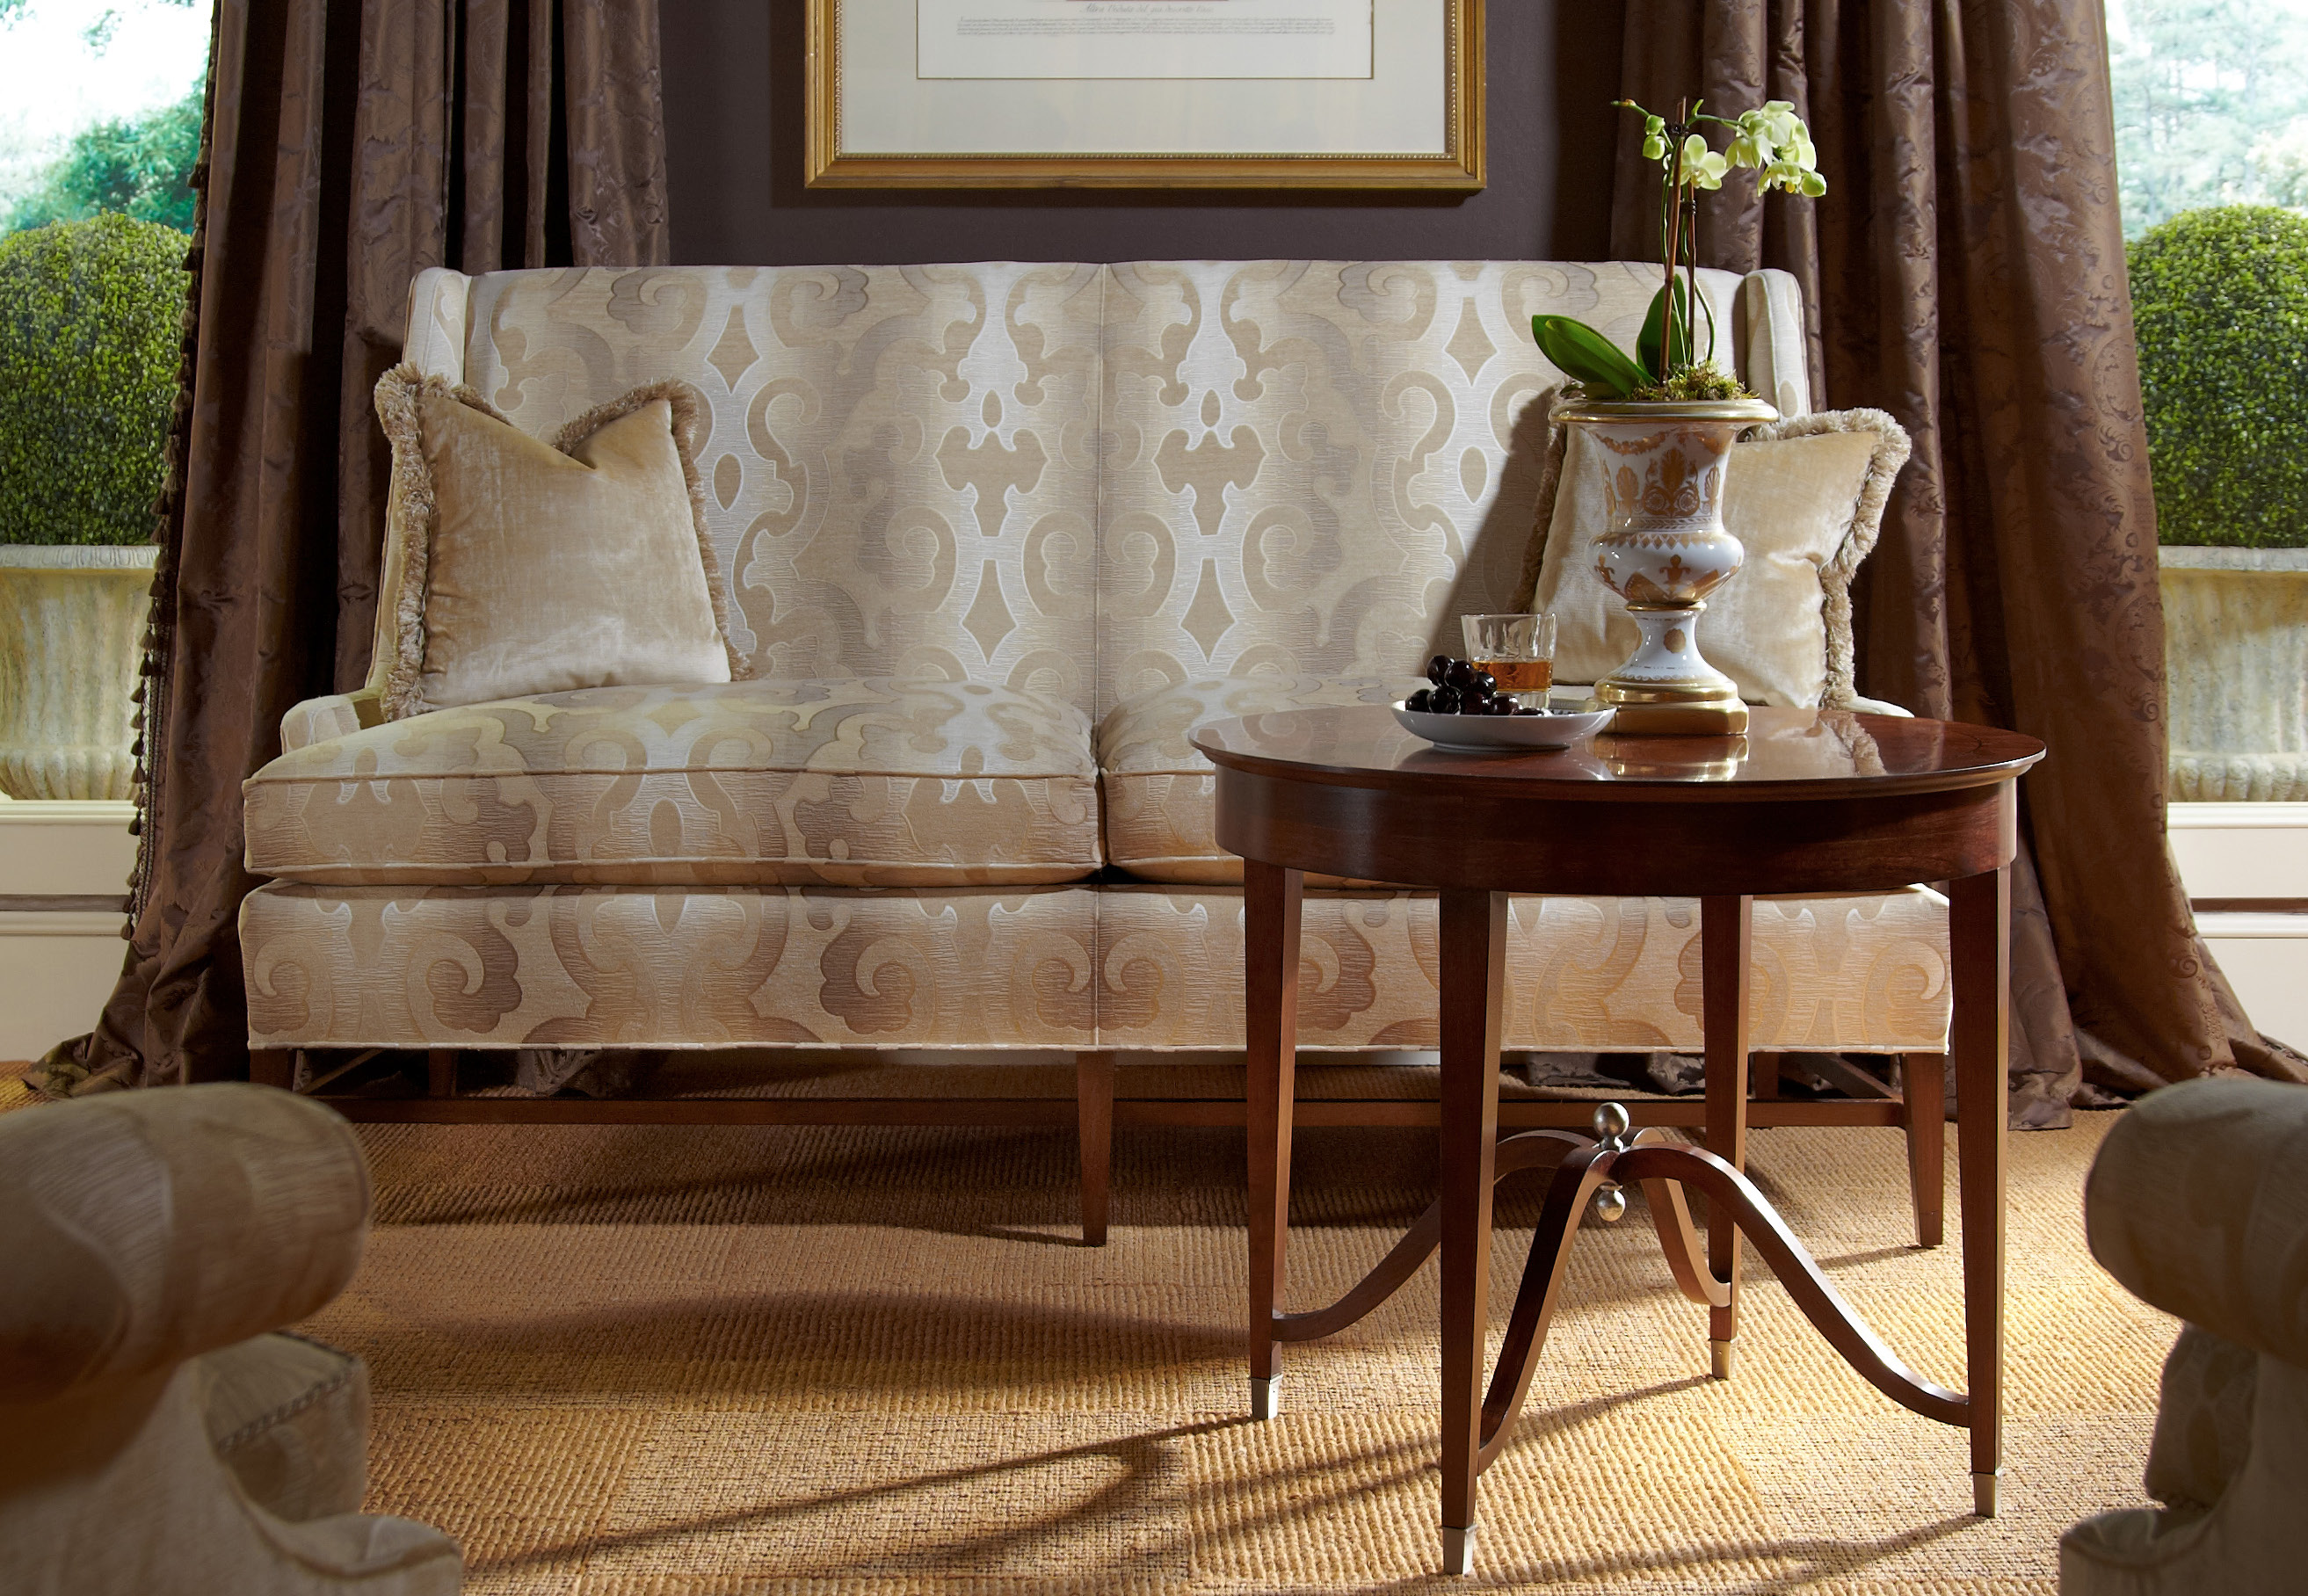 By designing top quality furnishings in solid wood  we strive to create the  ultimate in comfort for your home and family  With certification from the. Home Furnishings   George Washington s Mount Vernon